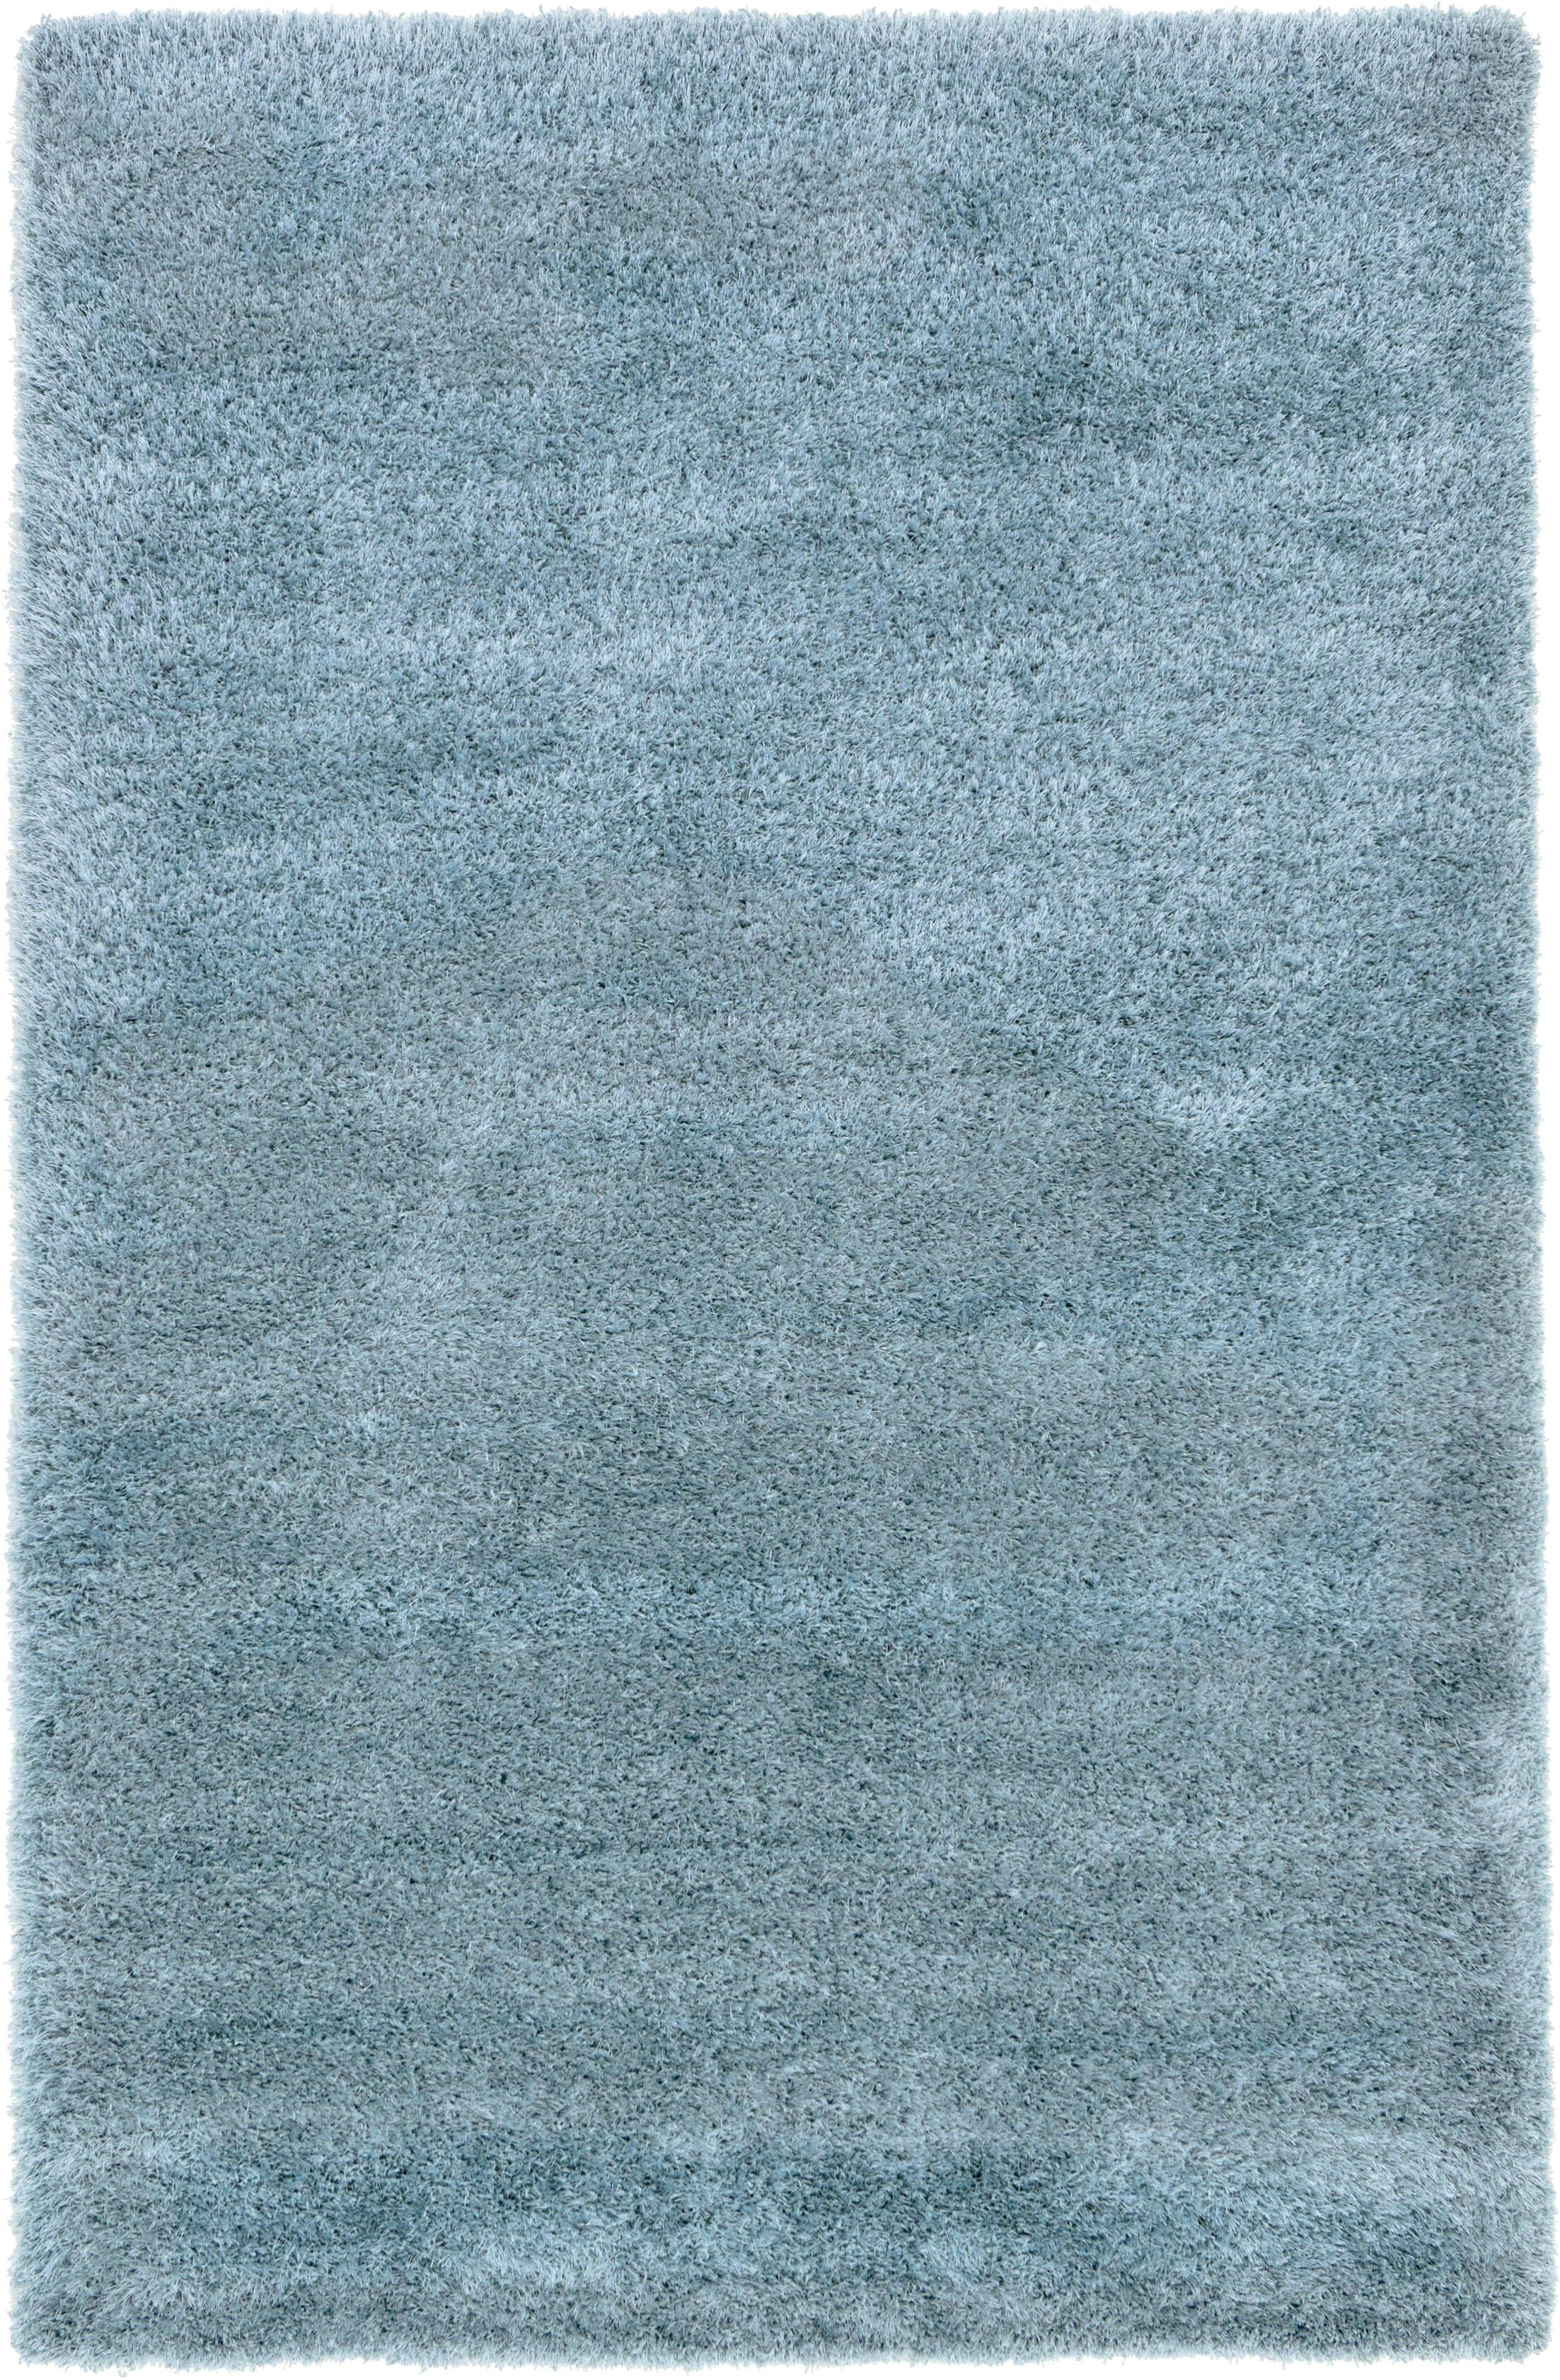 Evelyn Light Blue Area Rug Rug Size: Rectangle 5' x 8'